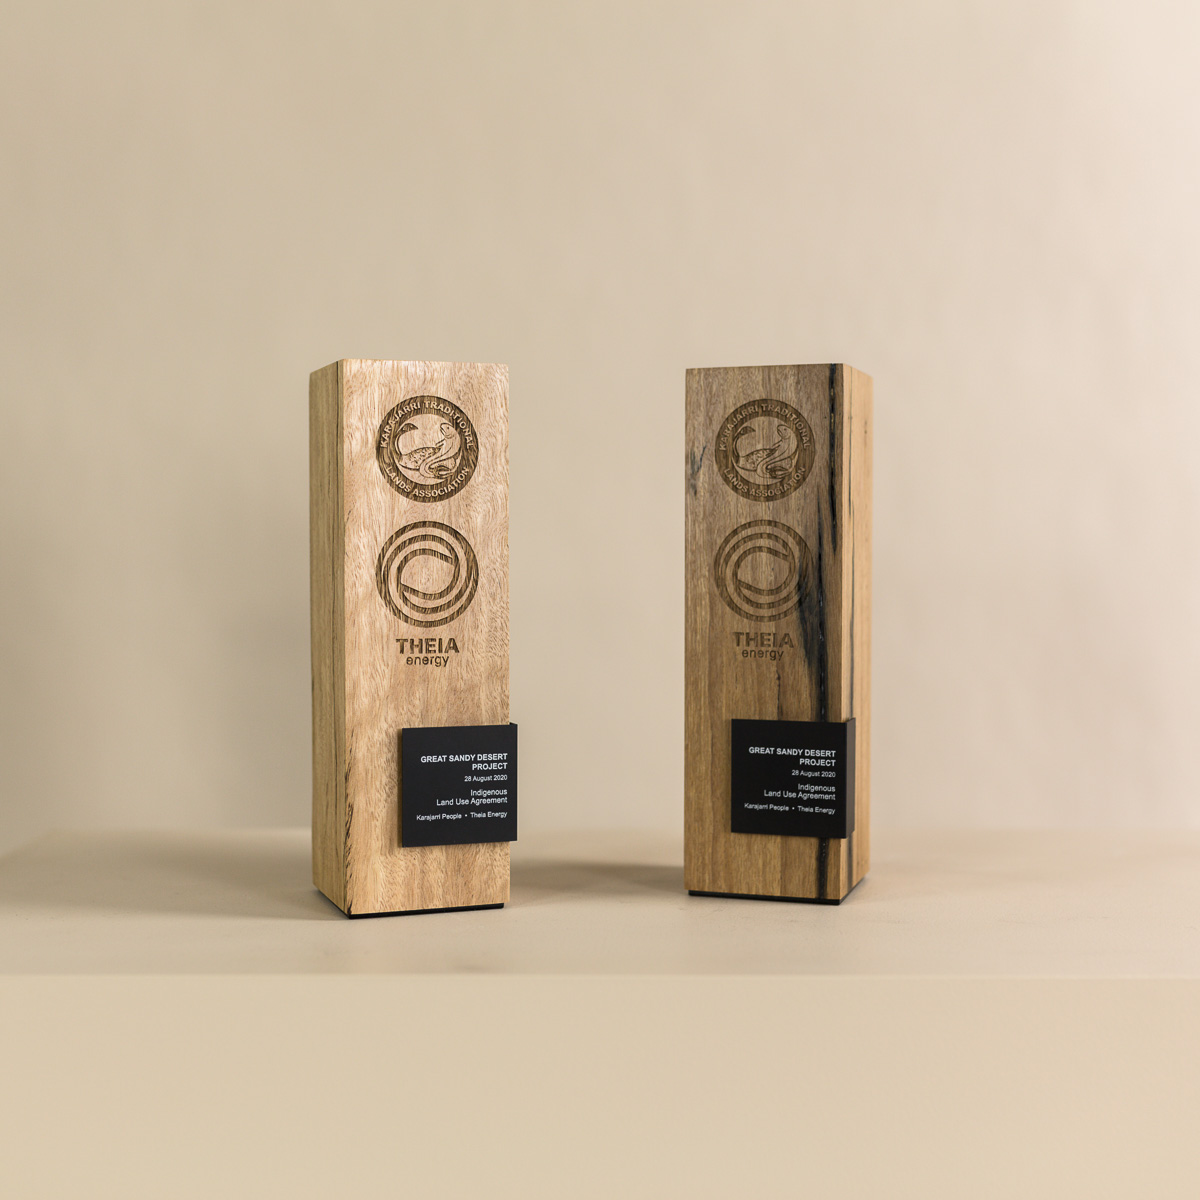 The Theia Energy Sustainable Award Trophies